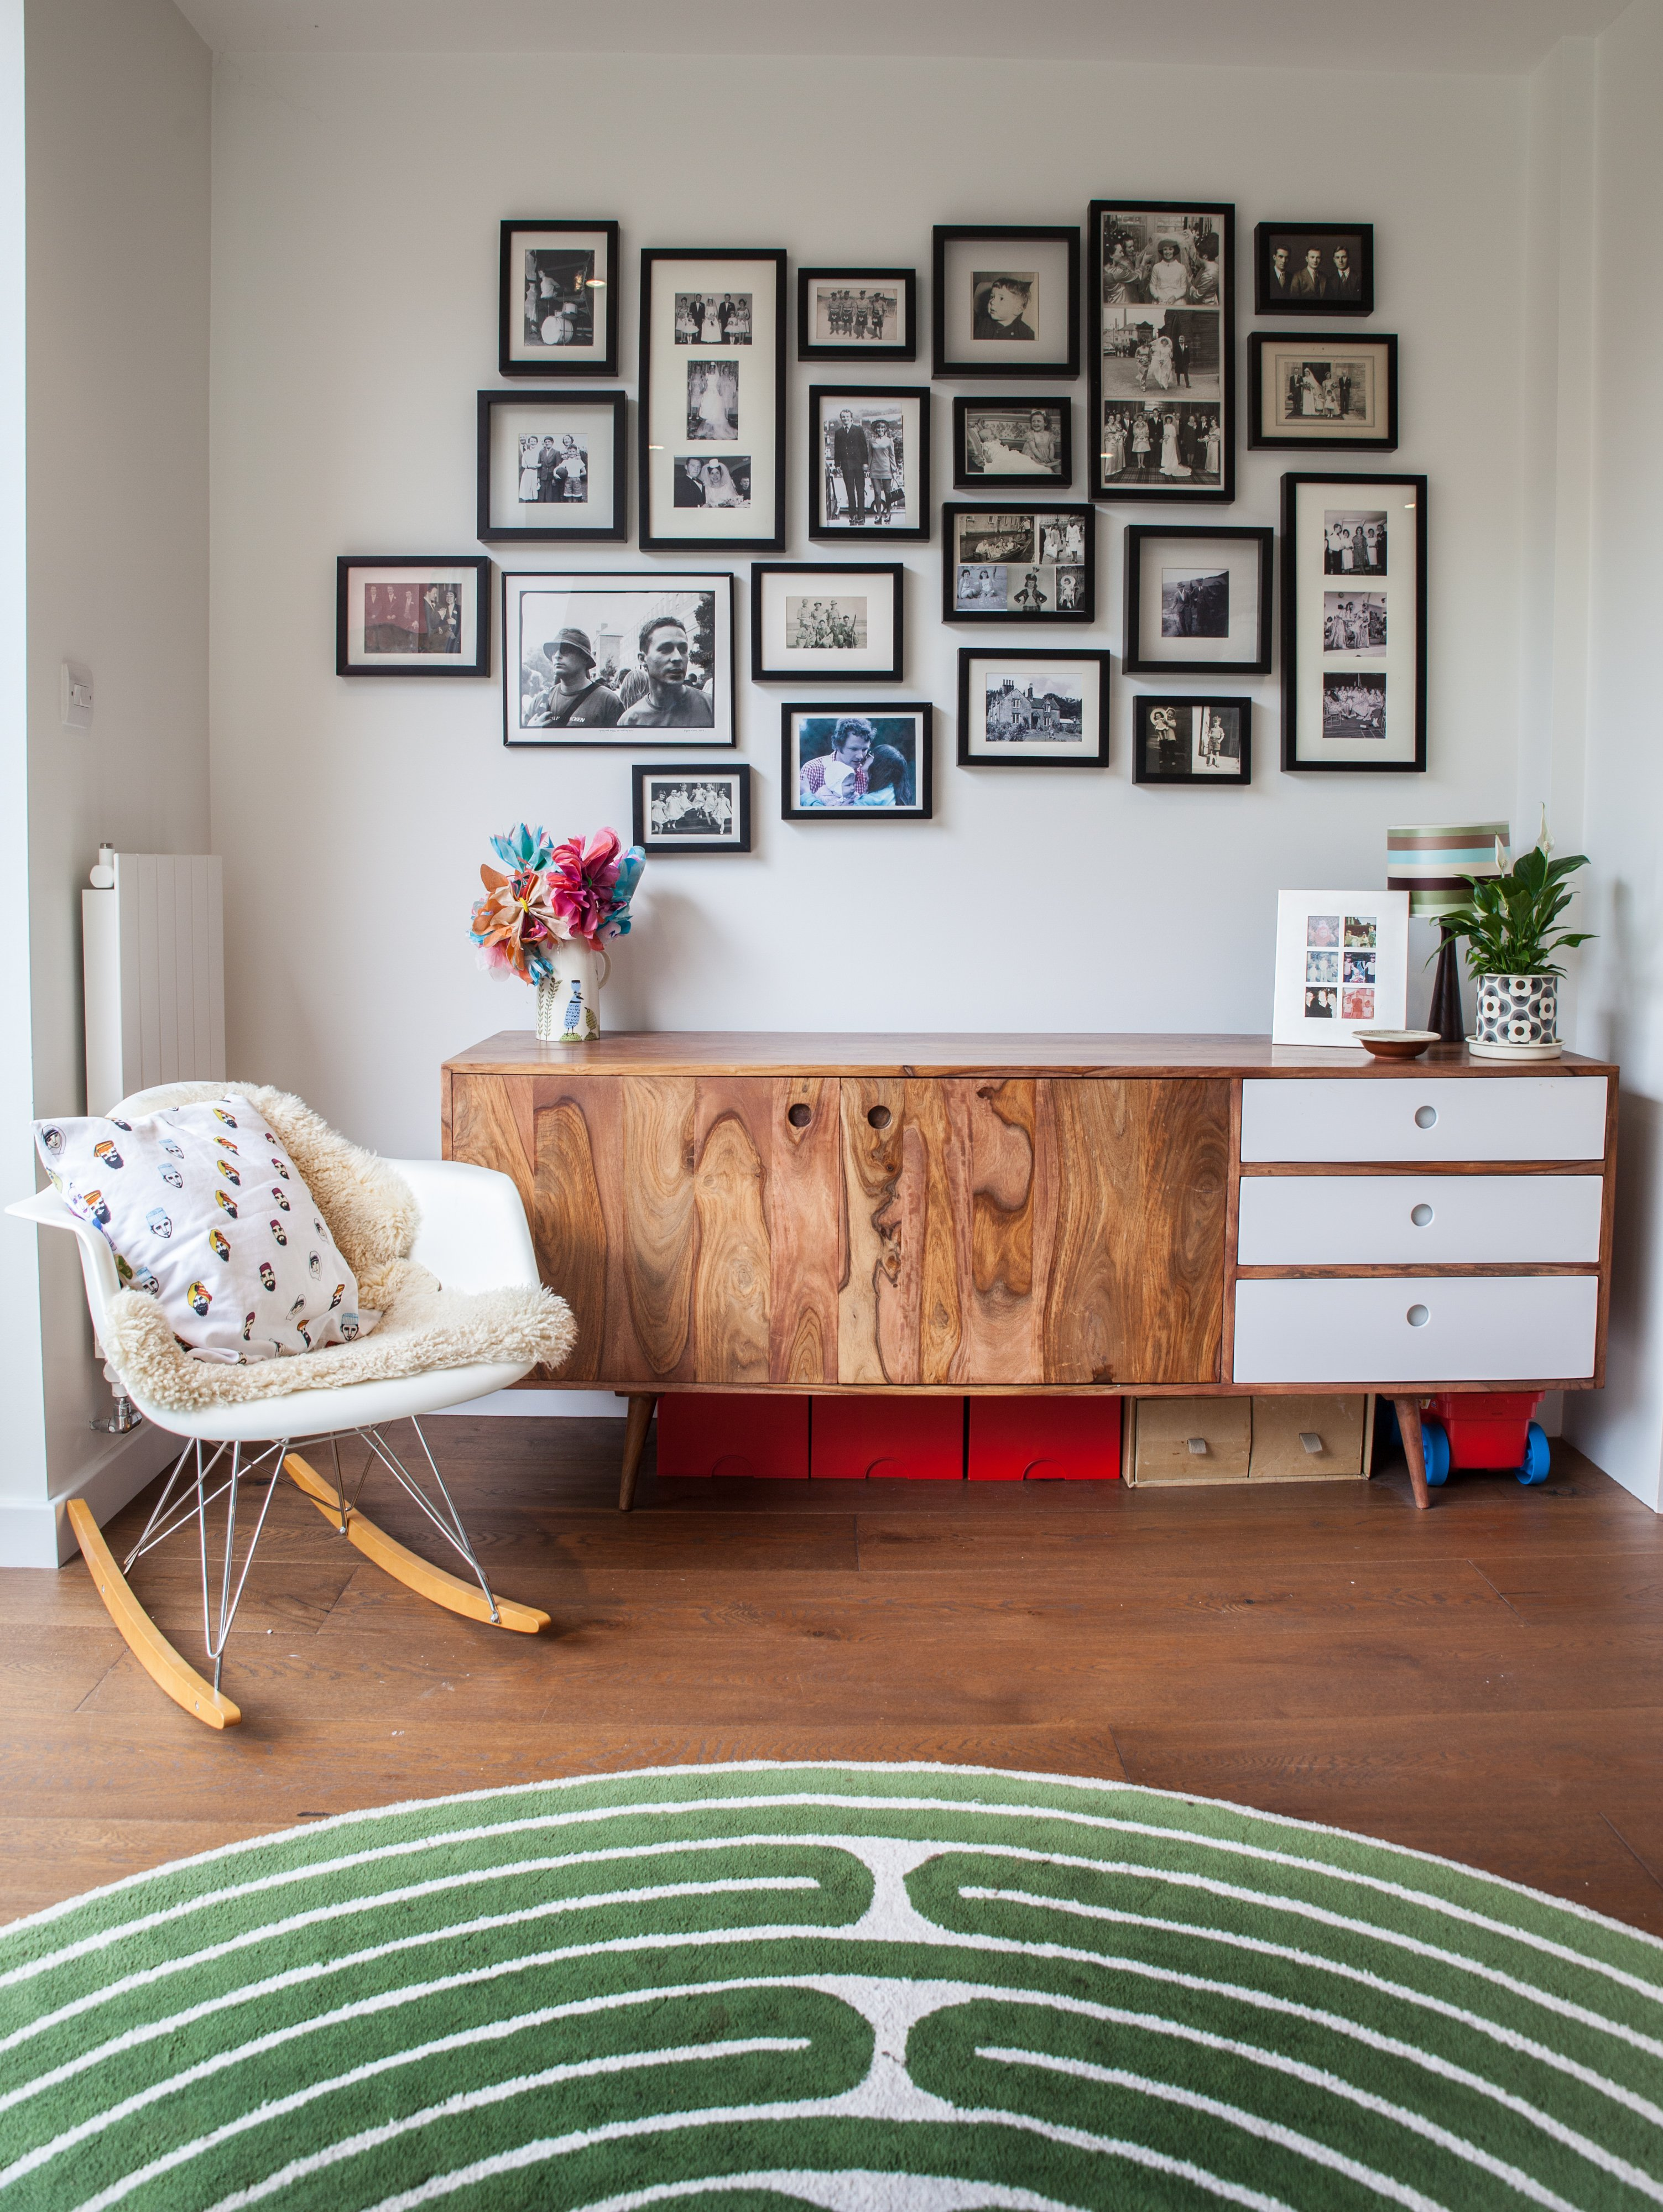 Surprising 10 Things To Know About Your Eames Chair Apartment Therapy Pabps2019 Chair Design Images Pabps2019Com